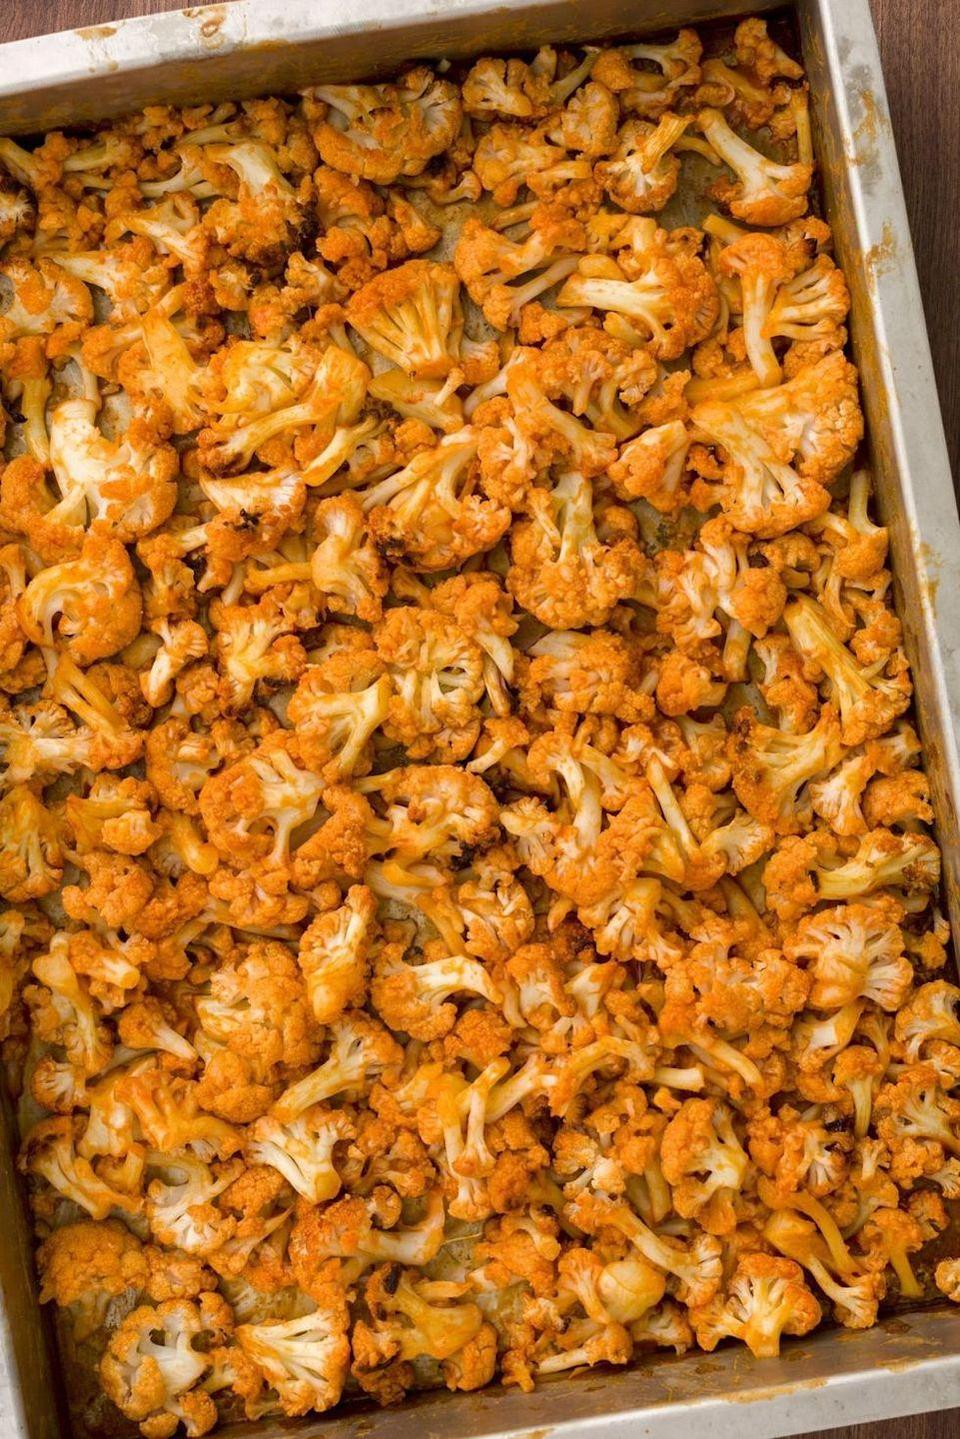 """<p>Sure, <a href=""""https://www.delish.com/uk/cooking/recipes/a29571609/classic-buffalo-wings-recipe/"""" rel=""""nofollow noopener"""" target=""""_blank"""" data-ylk=""""slk:buffalo wings"""" class=""""link rapid-noclick-resp"""">buffalo wings</a> are great, but they're not for everyone. These roasted cauliflower bites are much lighter, vegetarian, and like, actually good for you. For a sweet/savoury twist, add 2 teaspoons of honey to the butter and hot sauce mixture!</p><p>Get the <a href=""""https://www.delish.com/uk/cooking/recipes/a29866994/buffalo-cauliflower-recipe/"""" rel=""""nofollow noopener"""" target=""""_blank"""" data-ylk=""""slk:Buffalo Cauliflower"""" class=""""link rapid-noclick-resp"""">Buffalo Cauliflower</a> recipe.</p>"""